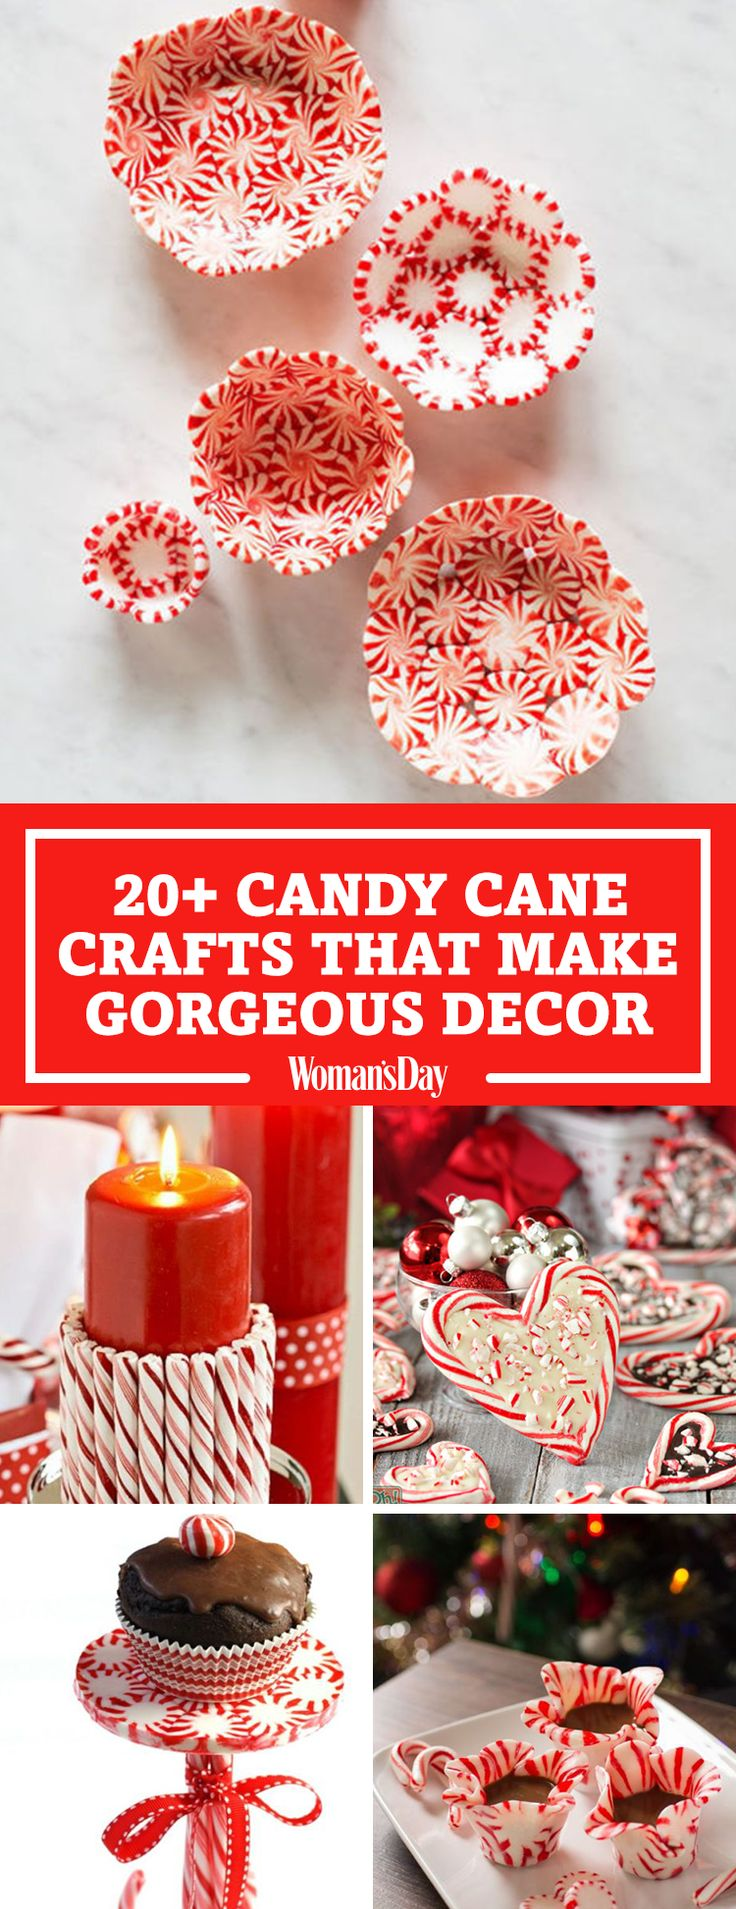 Deck your halls with these pretty candy cane crafts that make adorable decorations. These DIY candy cane crafts are simple and can be made as Christmas decorations, favors or dessert. Start the holiday season with a fun DIY craft.